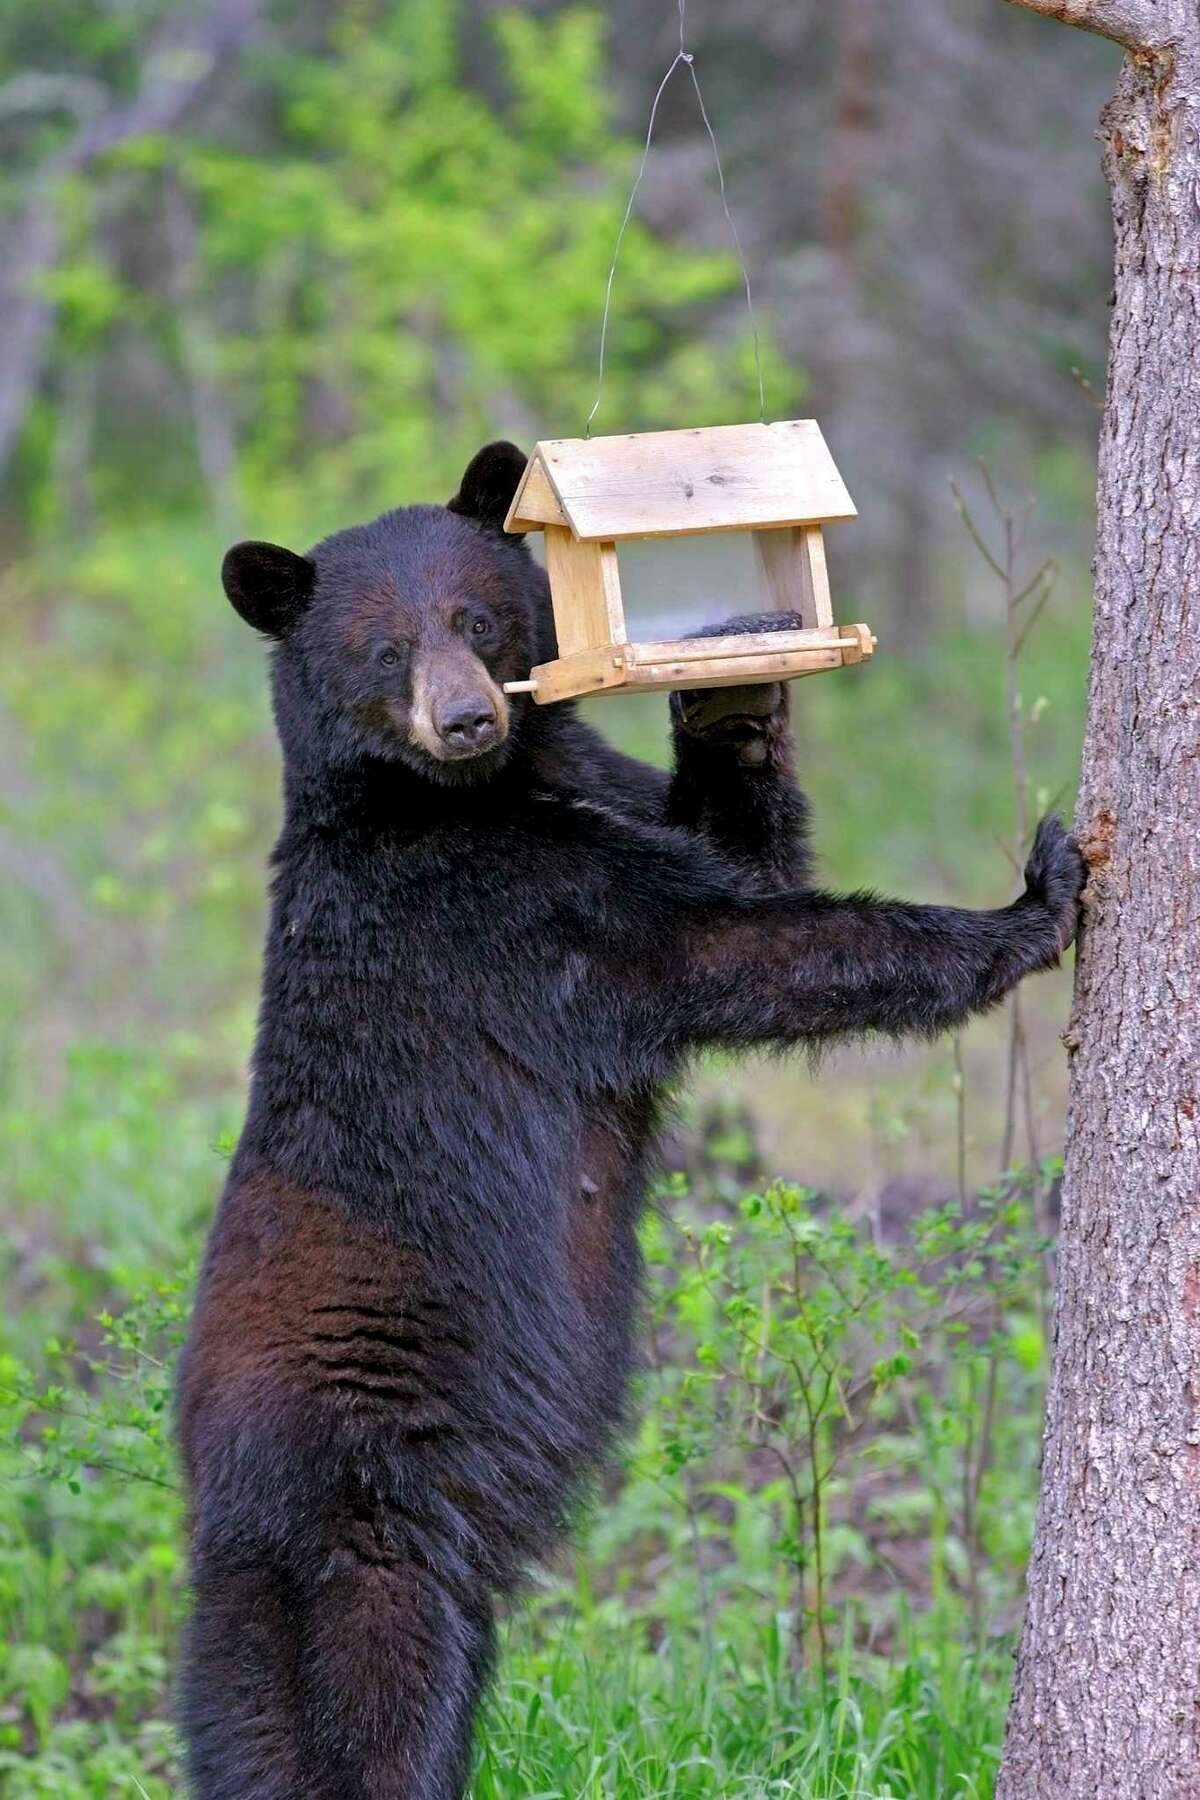 Northern Michigan residents should be aware thatblack bears are still active throughout the fall as they prepare for hibernation and search for foods rich in calories to build up their fat reserves. (Courtesy photo)